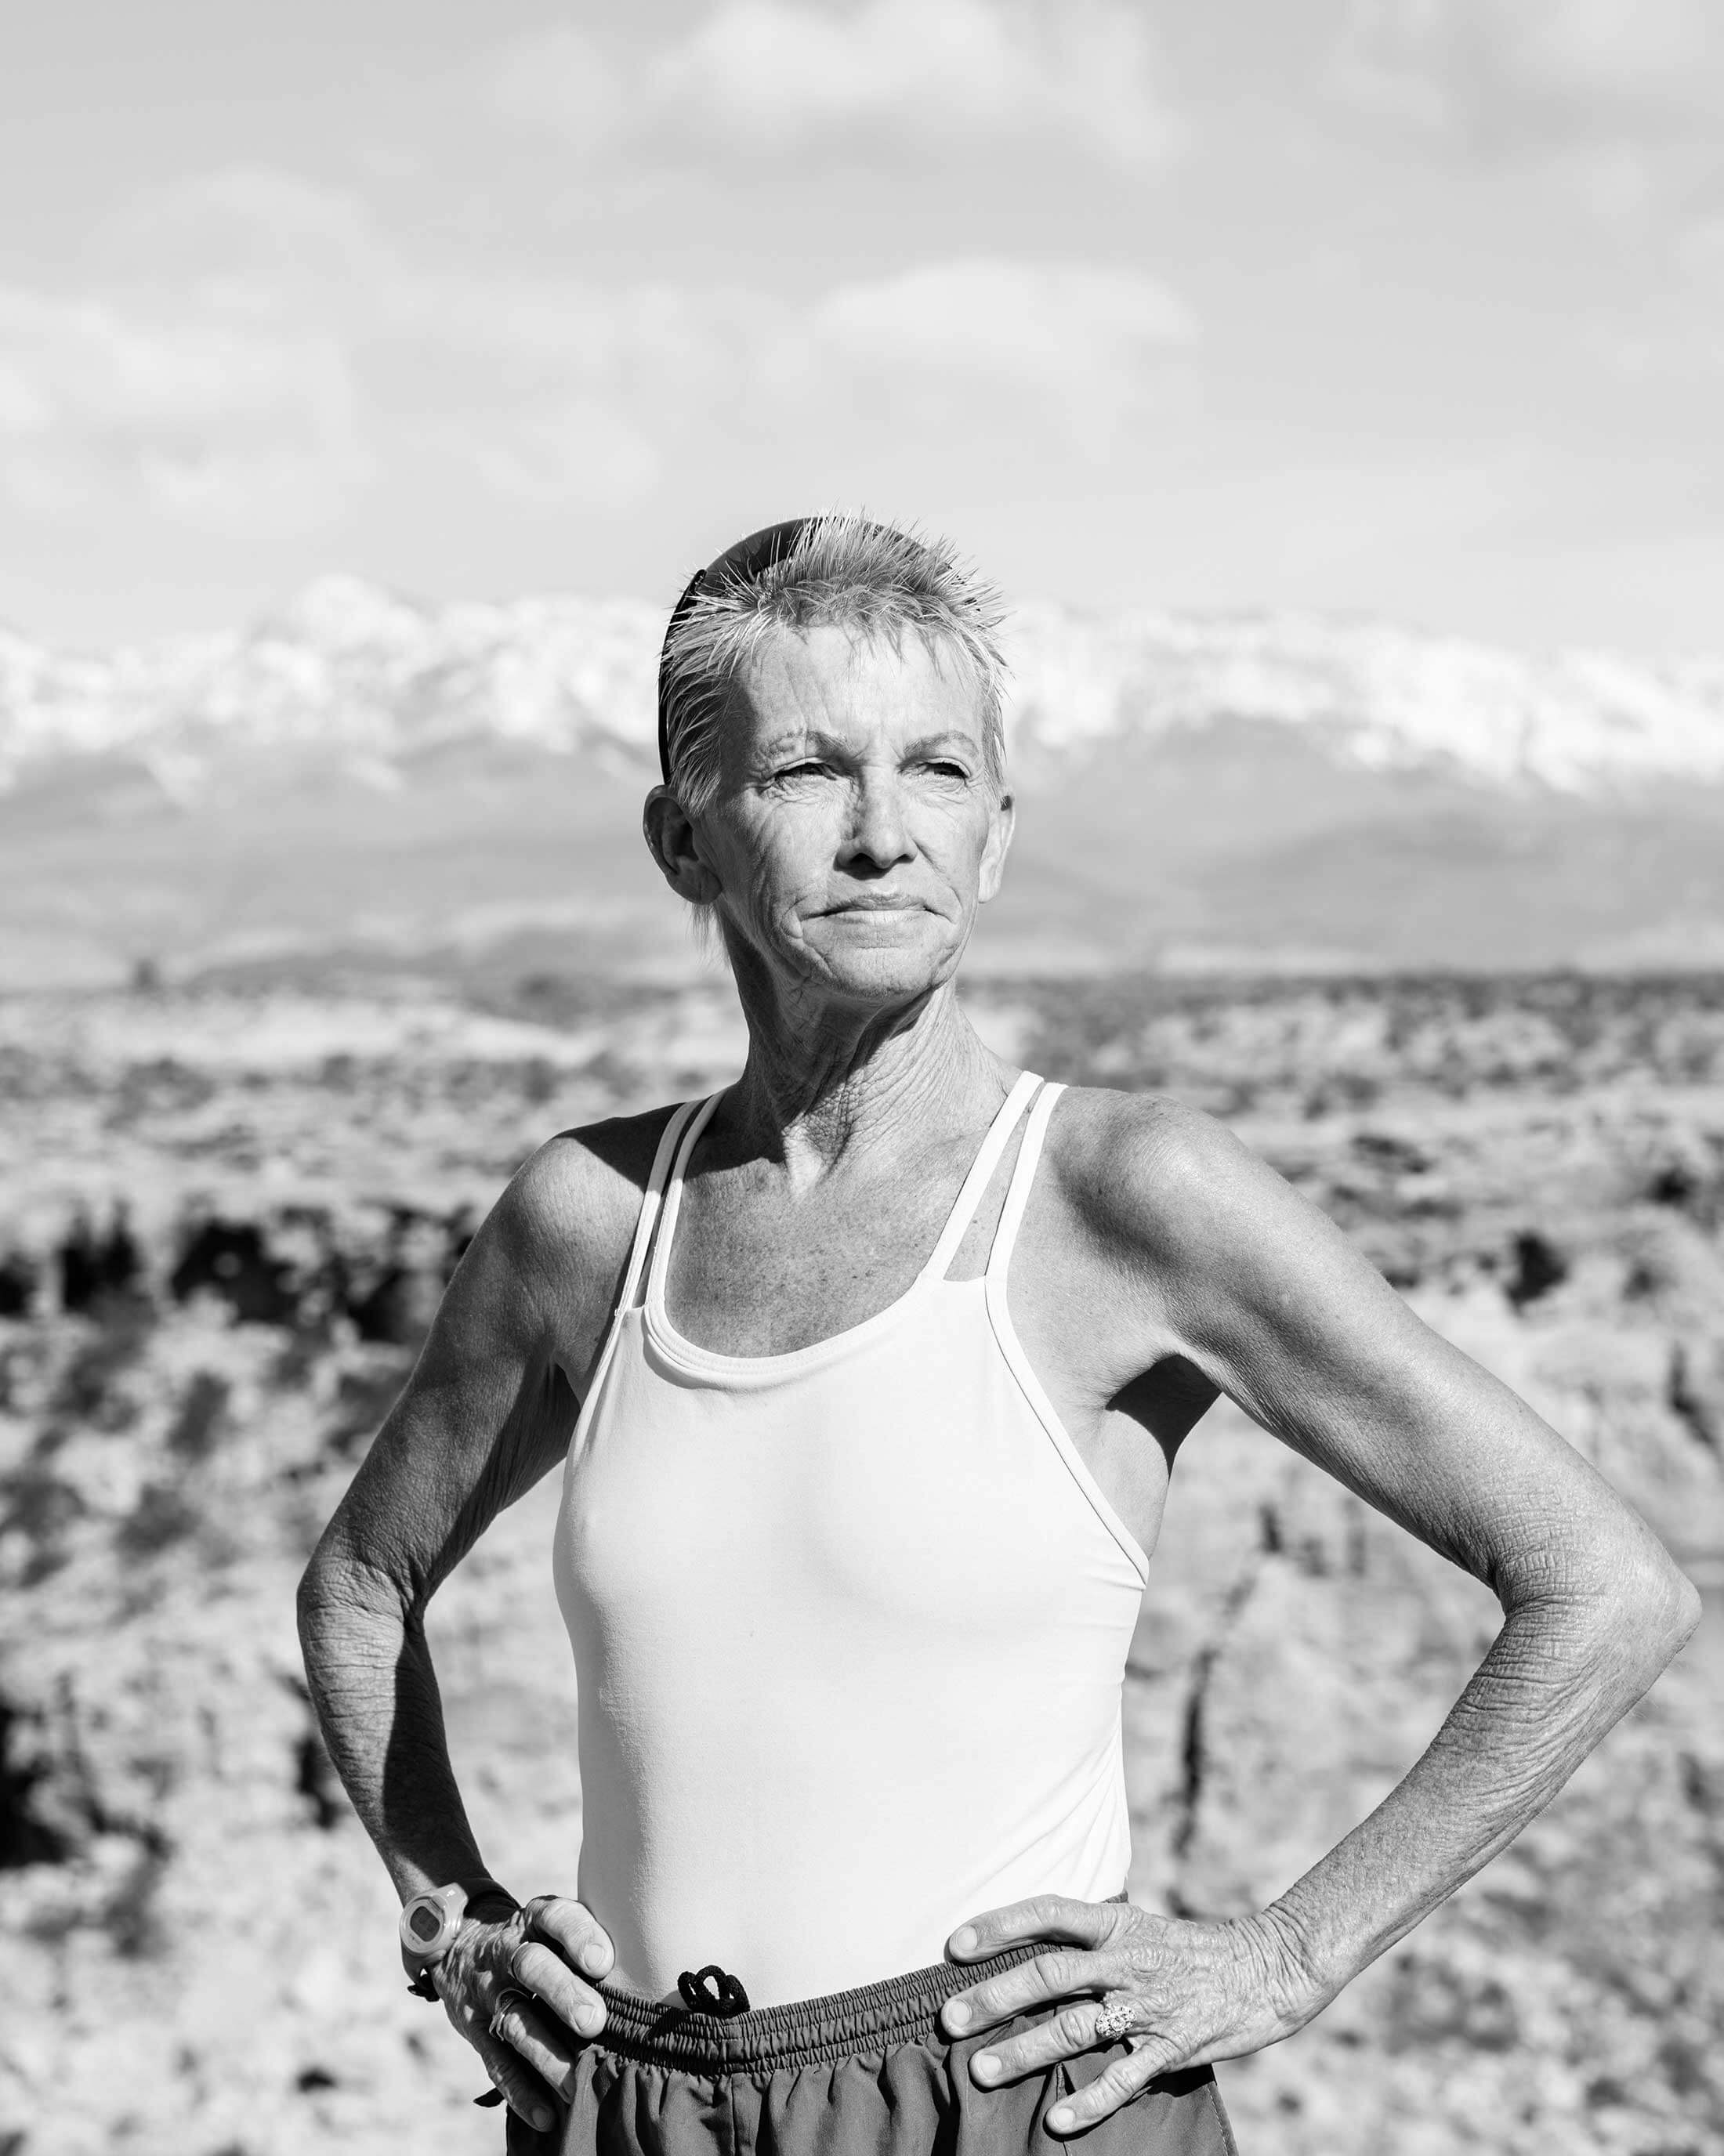 Pamela Reed in Utah the day before Zion National Park's 100-mile ultramarathon, where she placed third among female finishers in April.